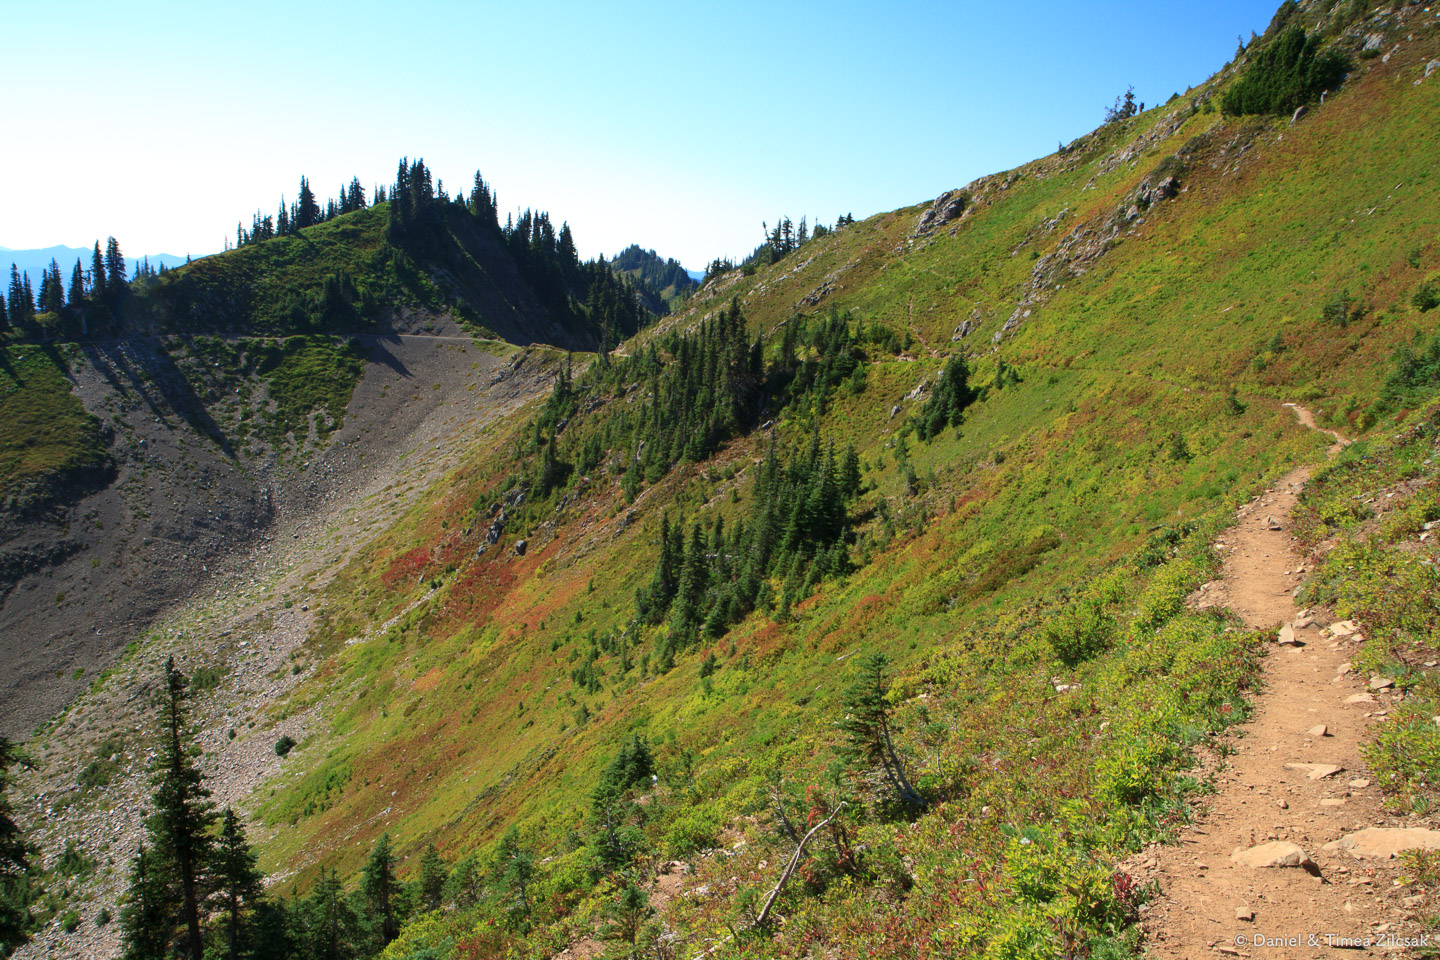 On the south side of Bogachiel Peak on the High Divide Trail, Ol